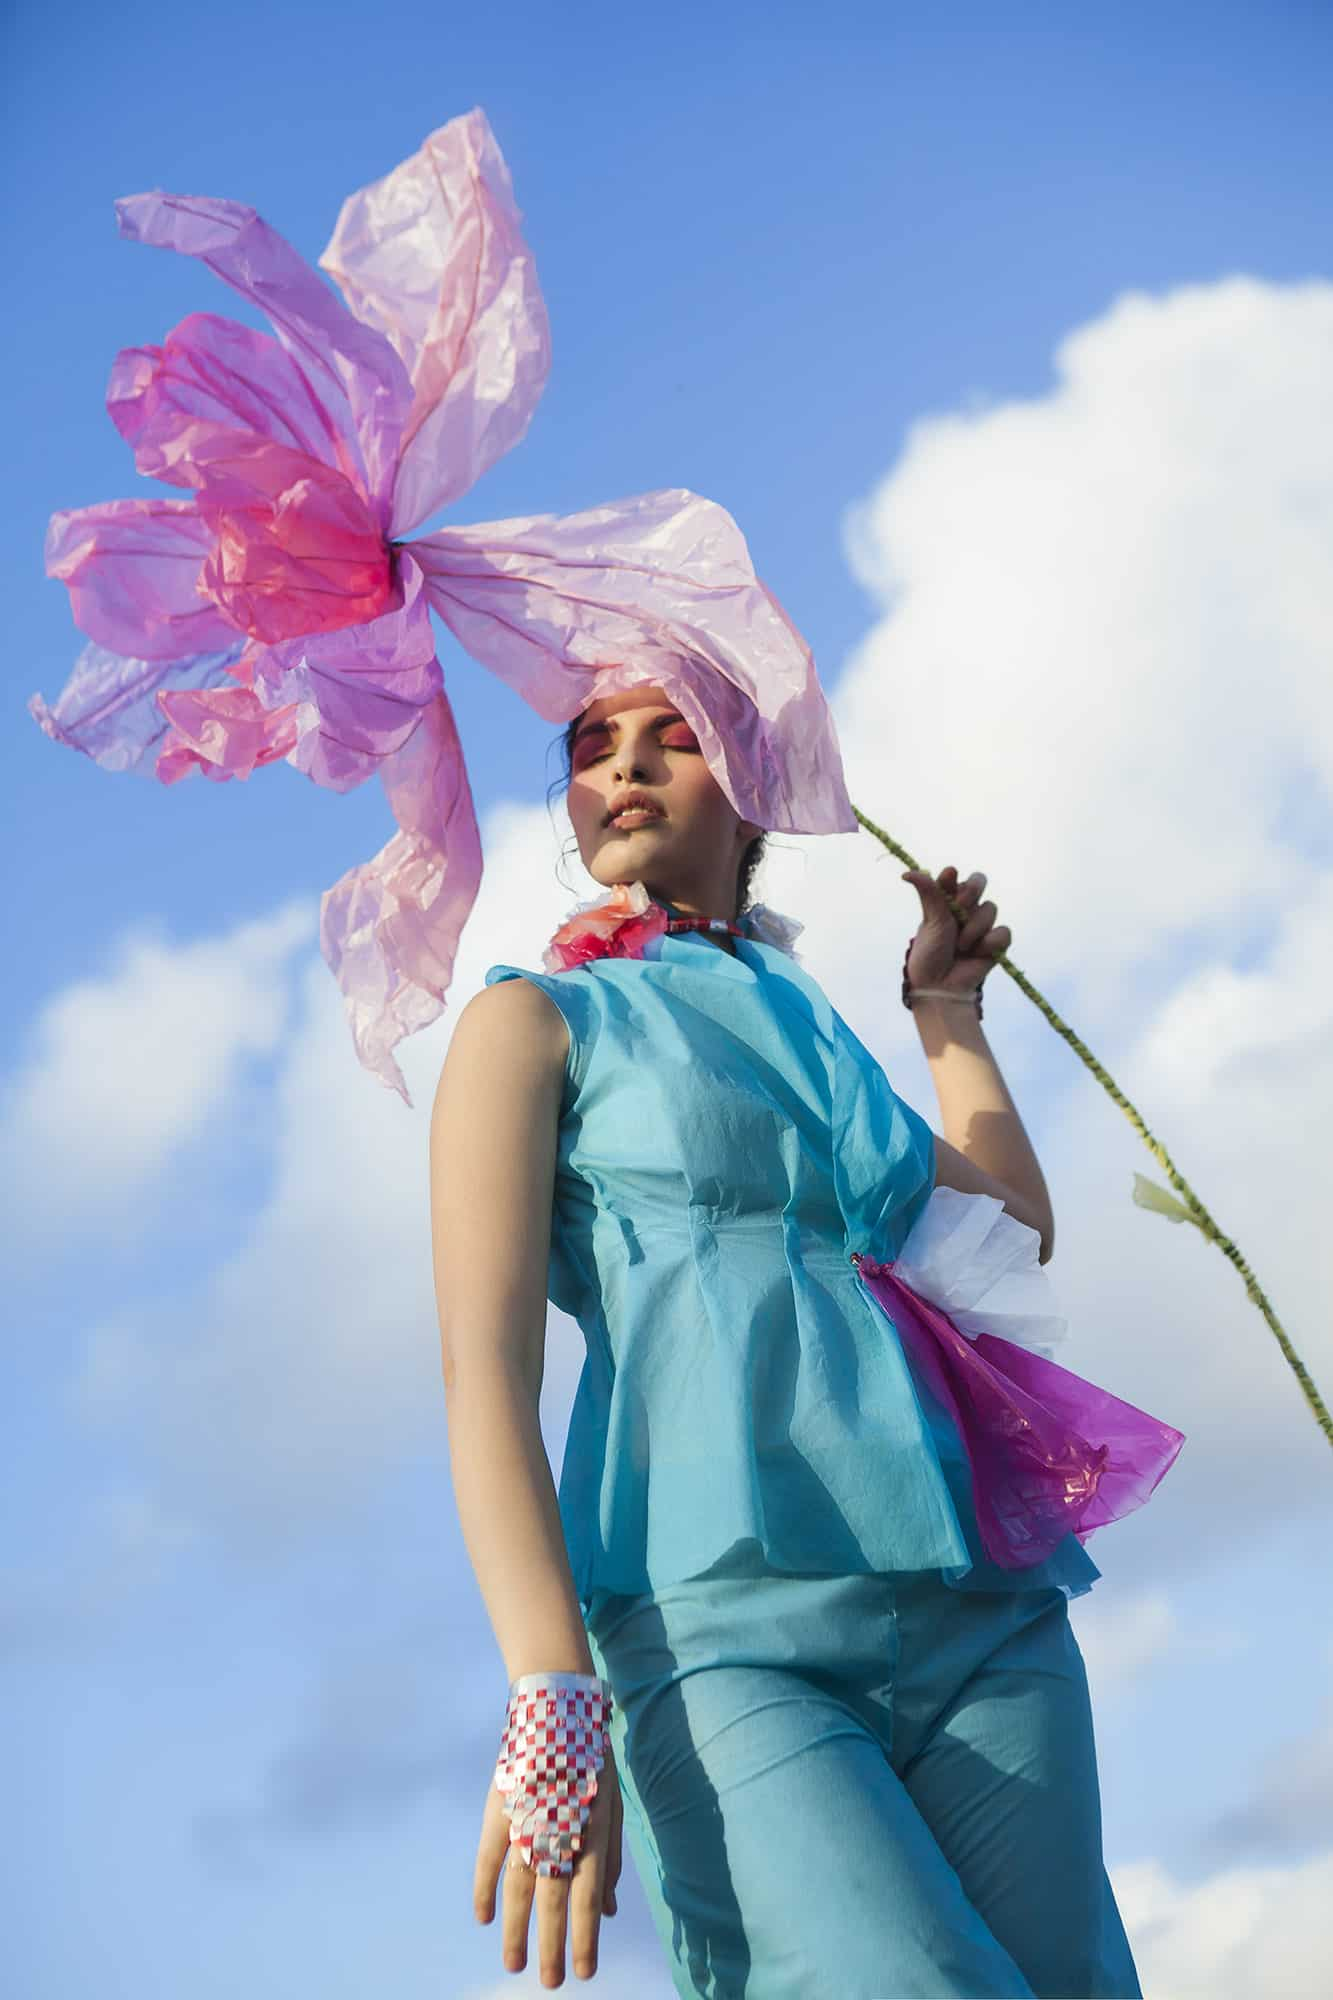 A Fantastic Plastic Photoshoot For Plastic Free July